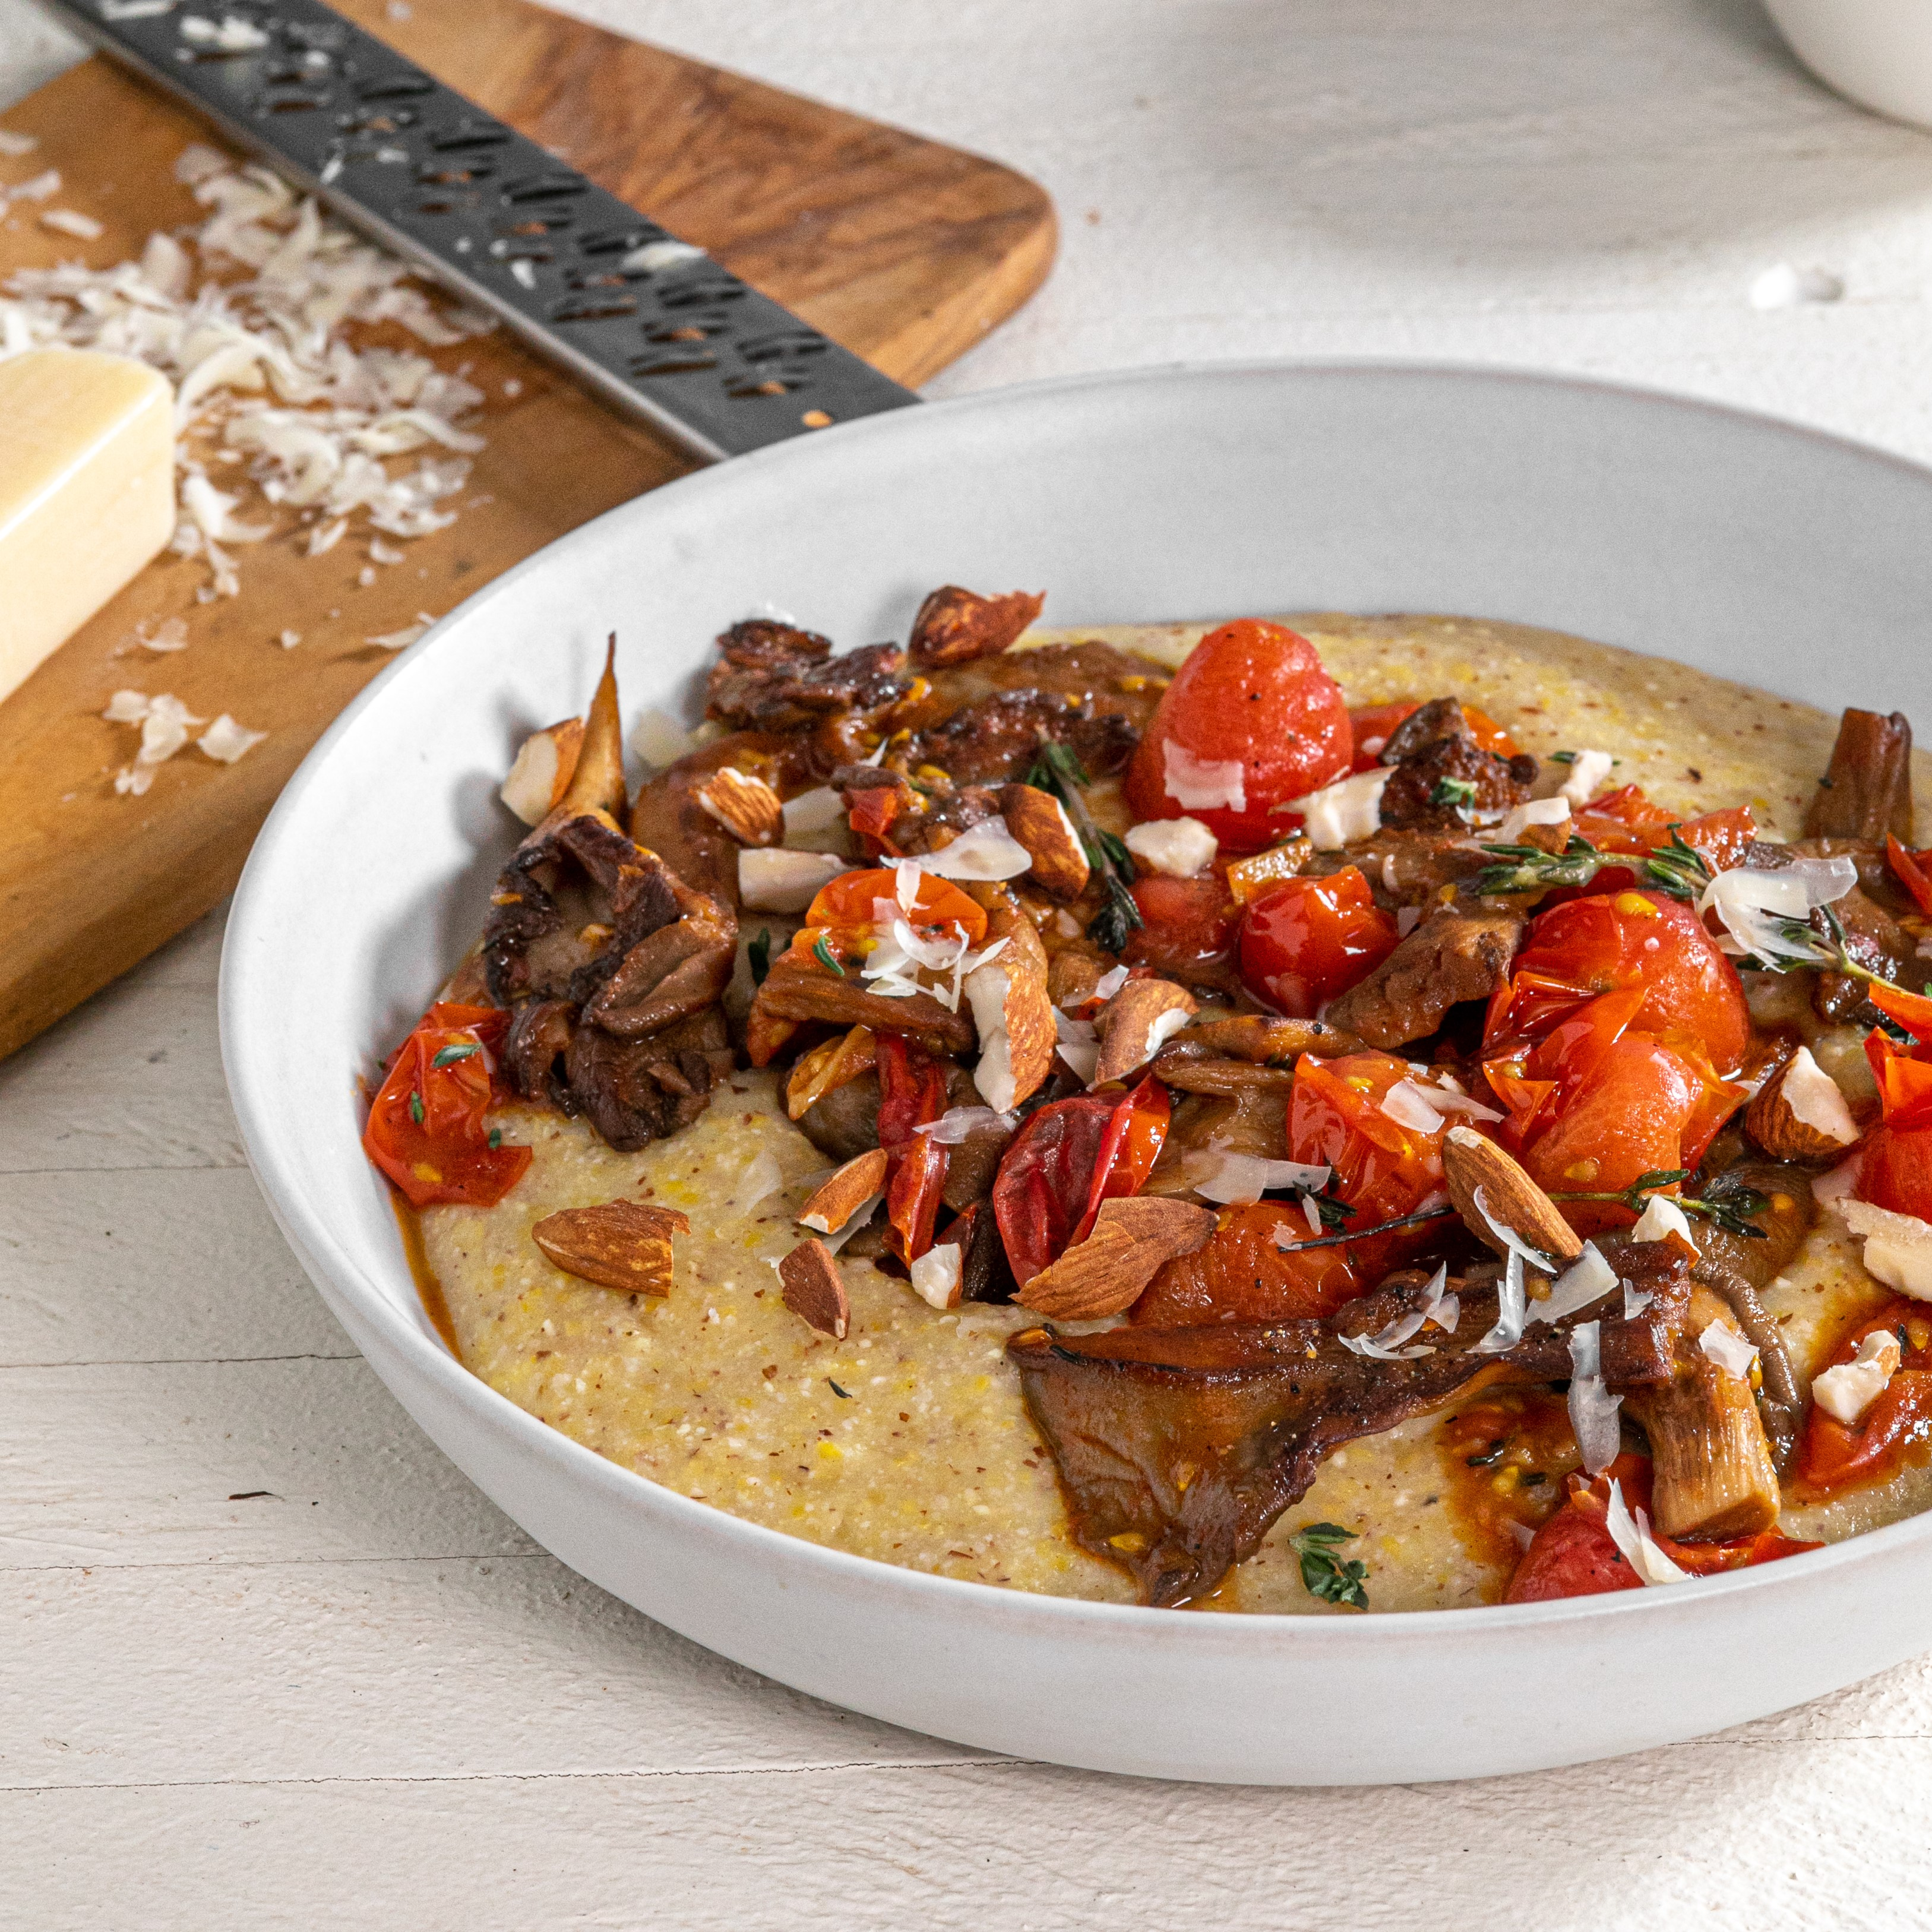 Almond Polenta with Balsamic Tomatoes and Mushrooms